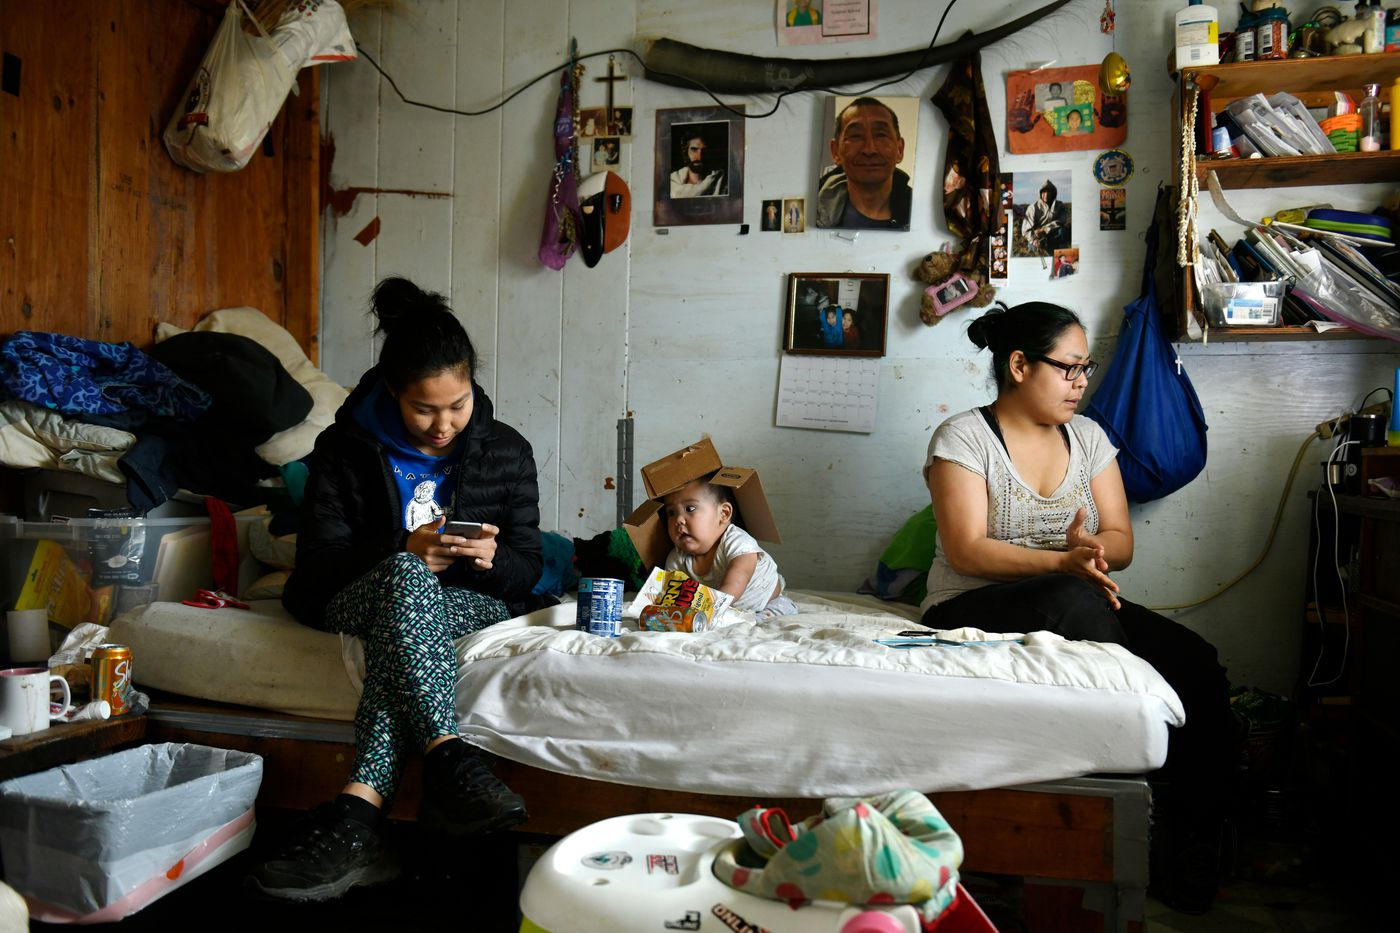 From left, Hannah John, 7-month-old Tom John, and Jocelyn spend time in their Newtok home. The family expected to move to Mertarvik within weeks. (Marc Lester / ADN)